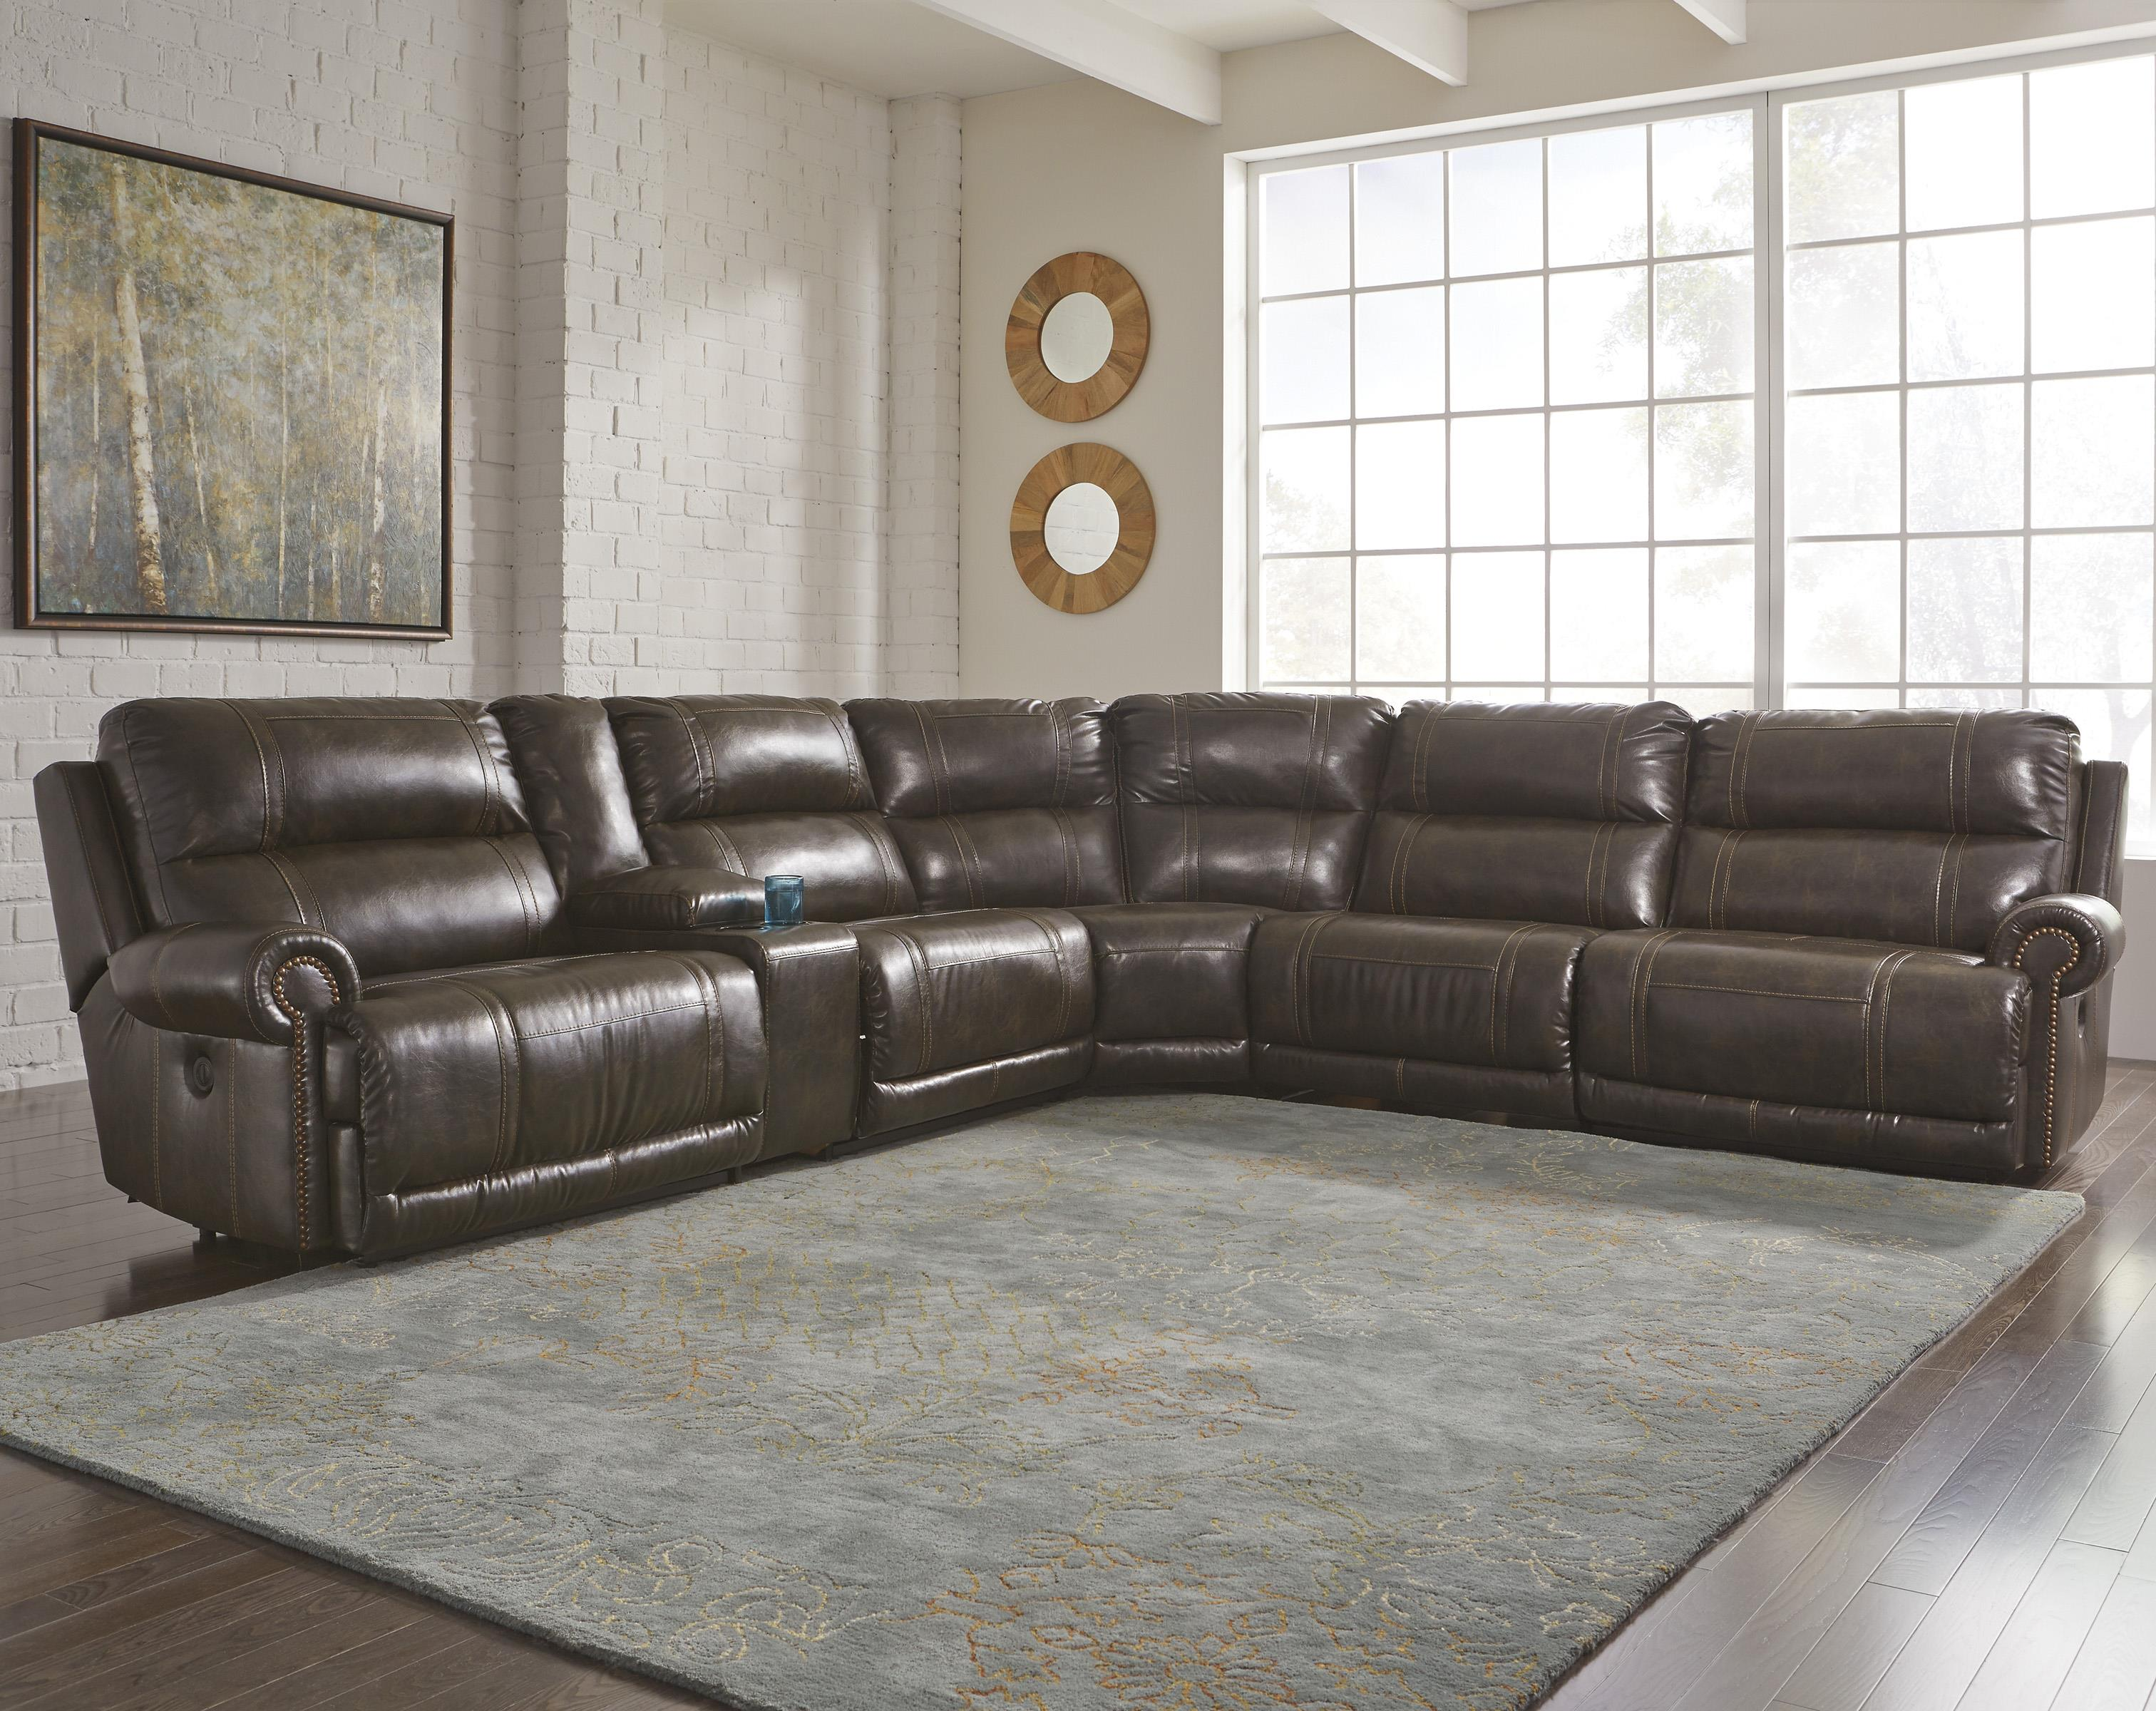 reclinable sectional sofas pull out sofa beds 6 piece power reclining with storage console